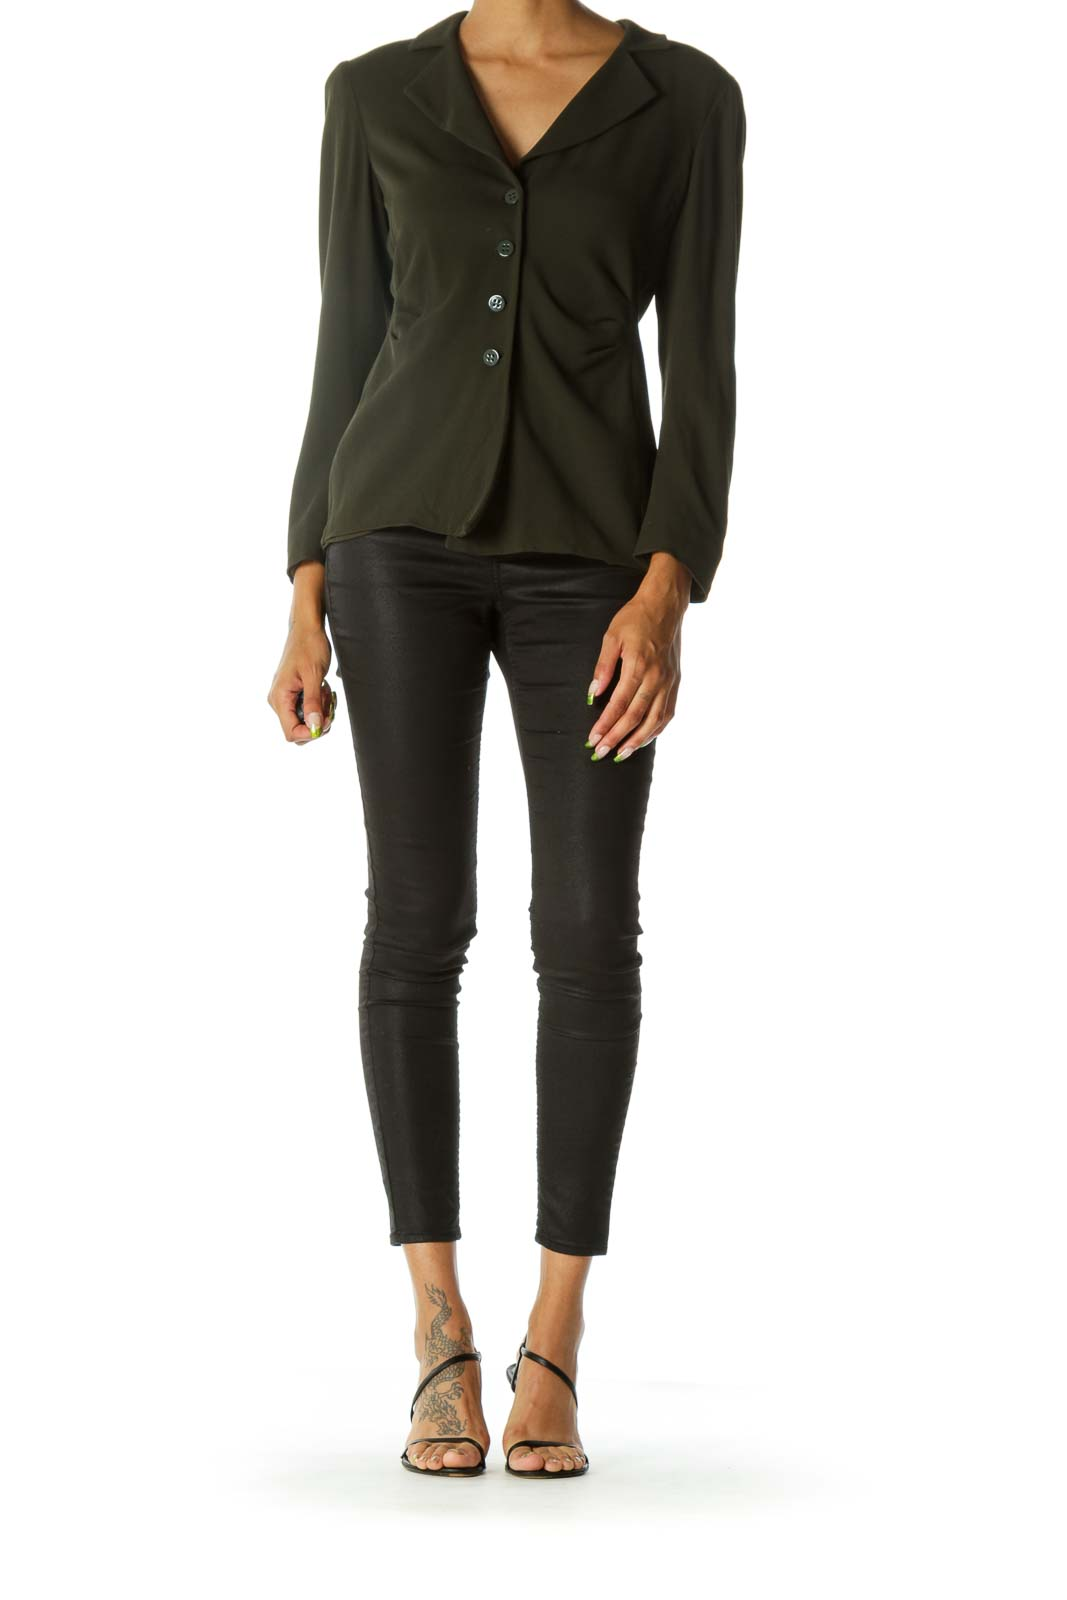 Green Designer Light-Layer Blazer